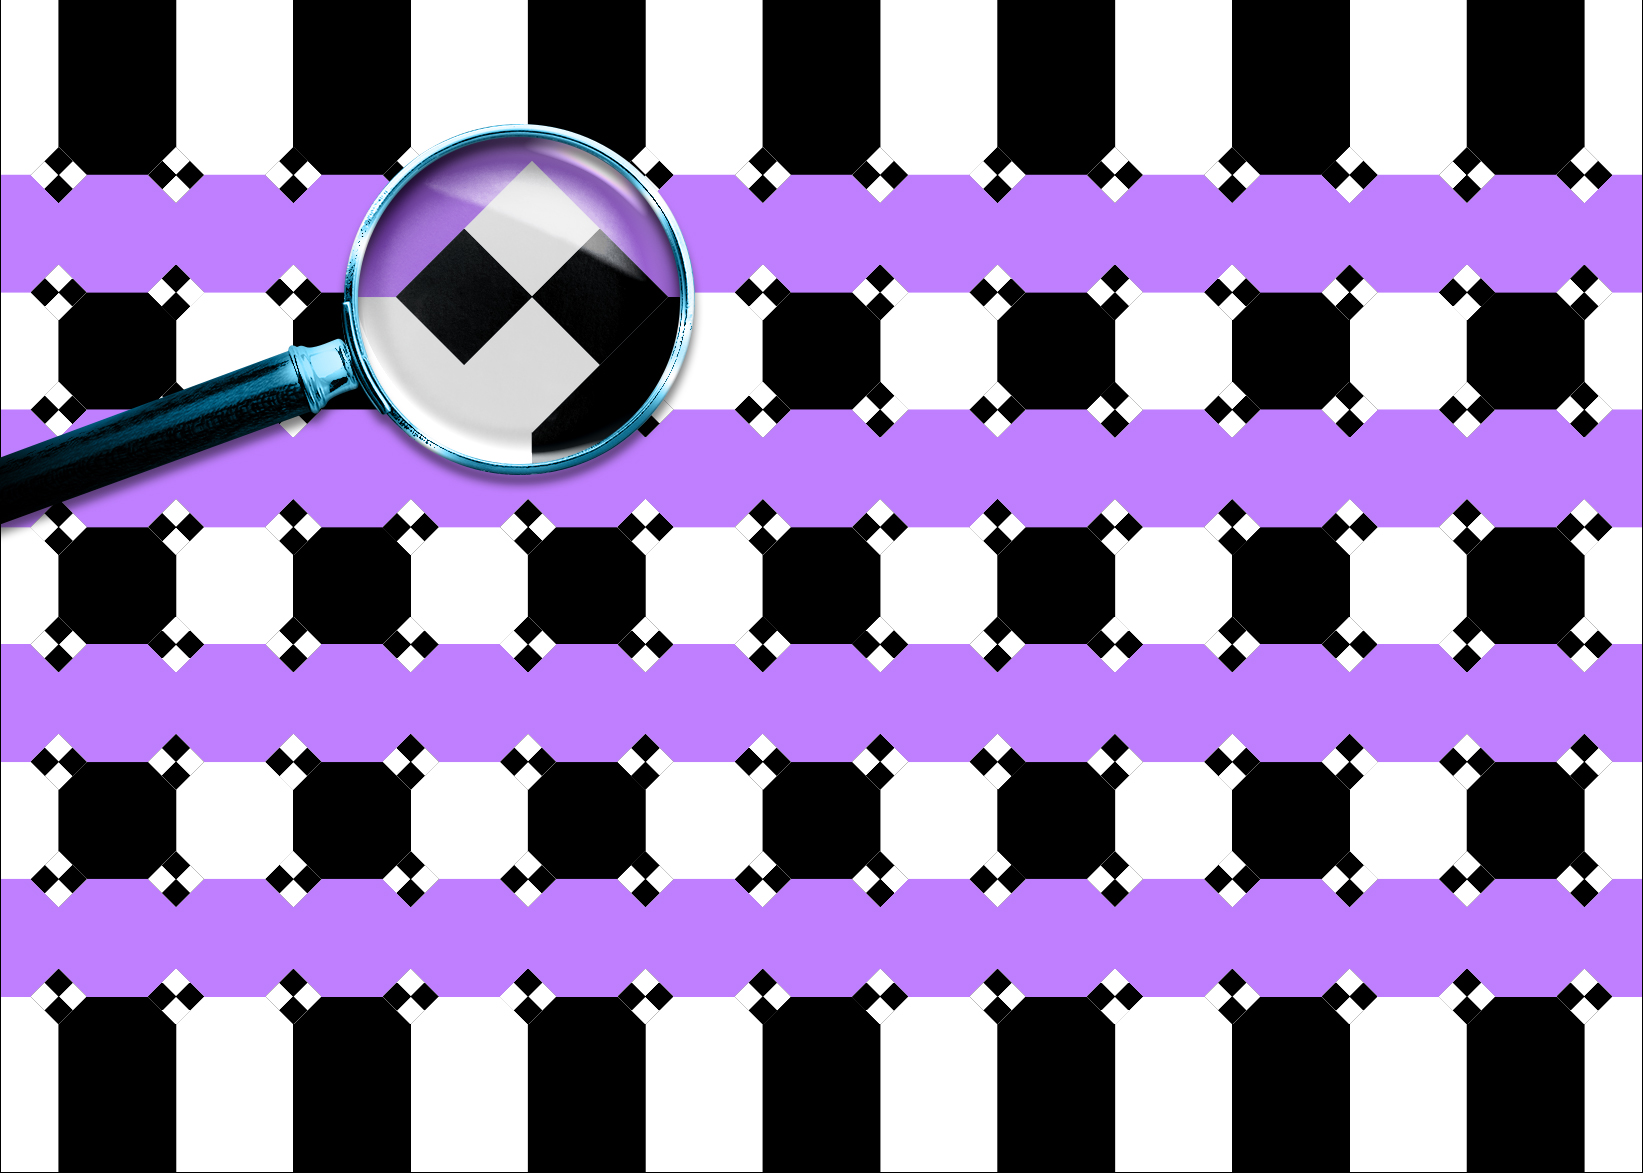 Checker shapes at the intersections create a bending illusion